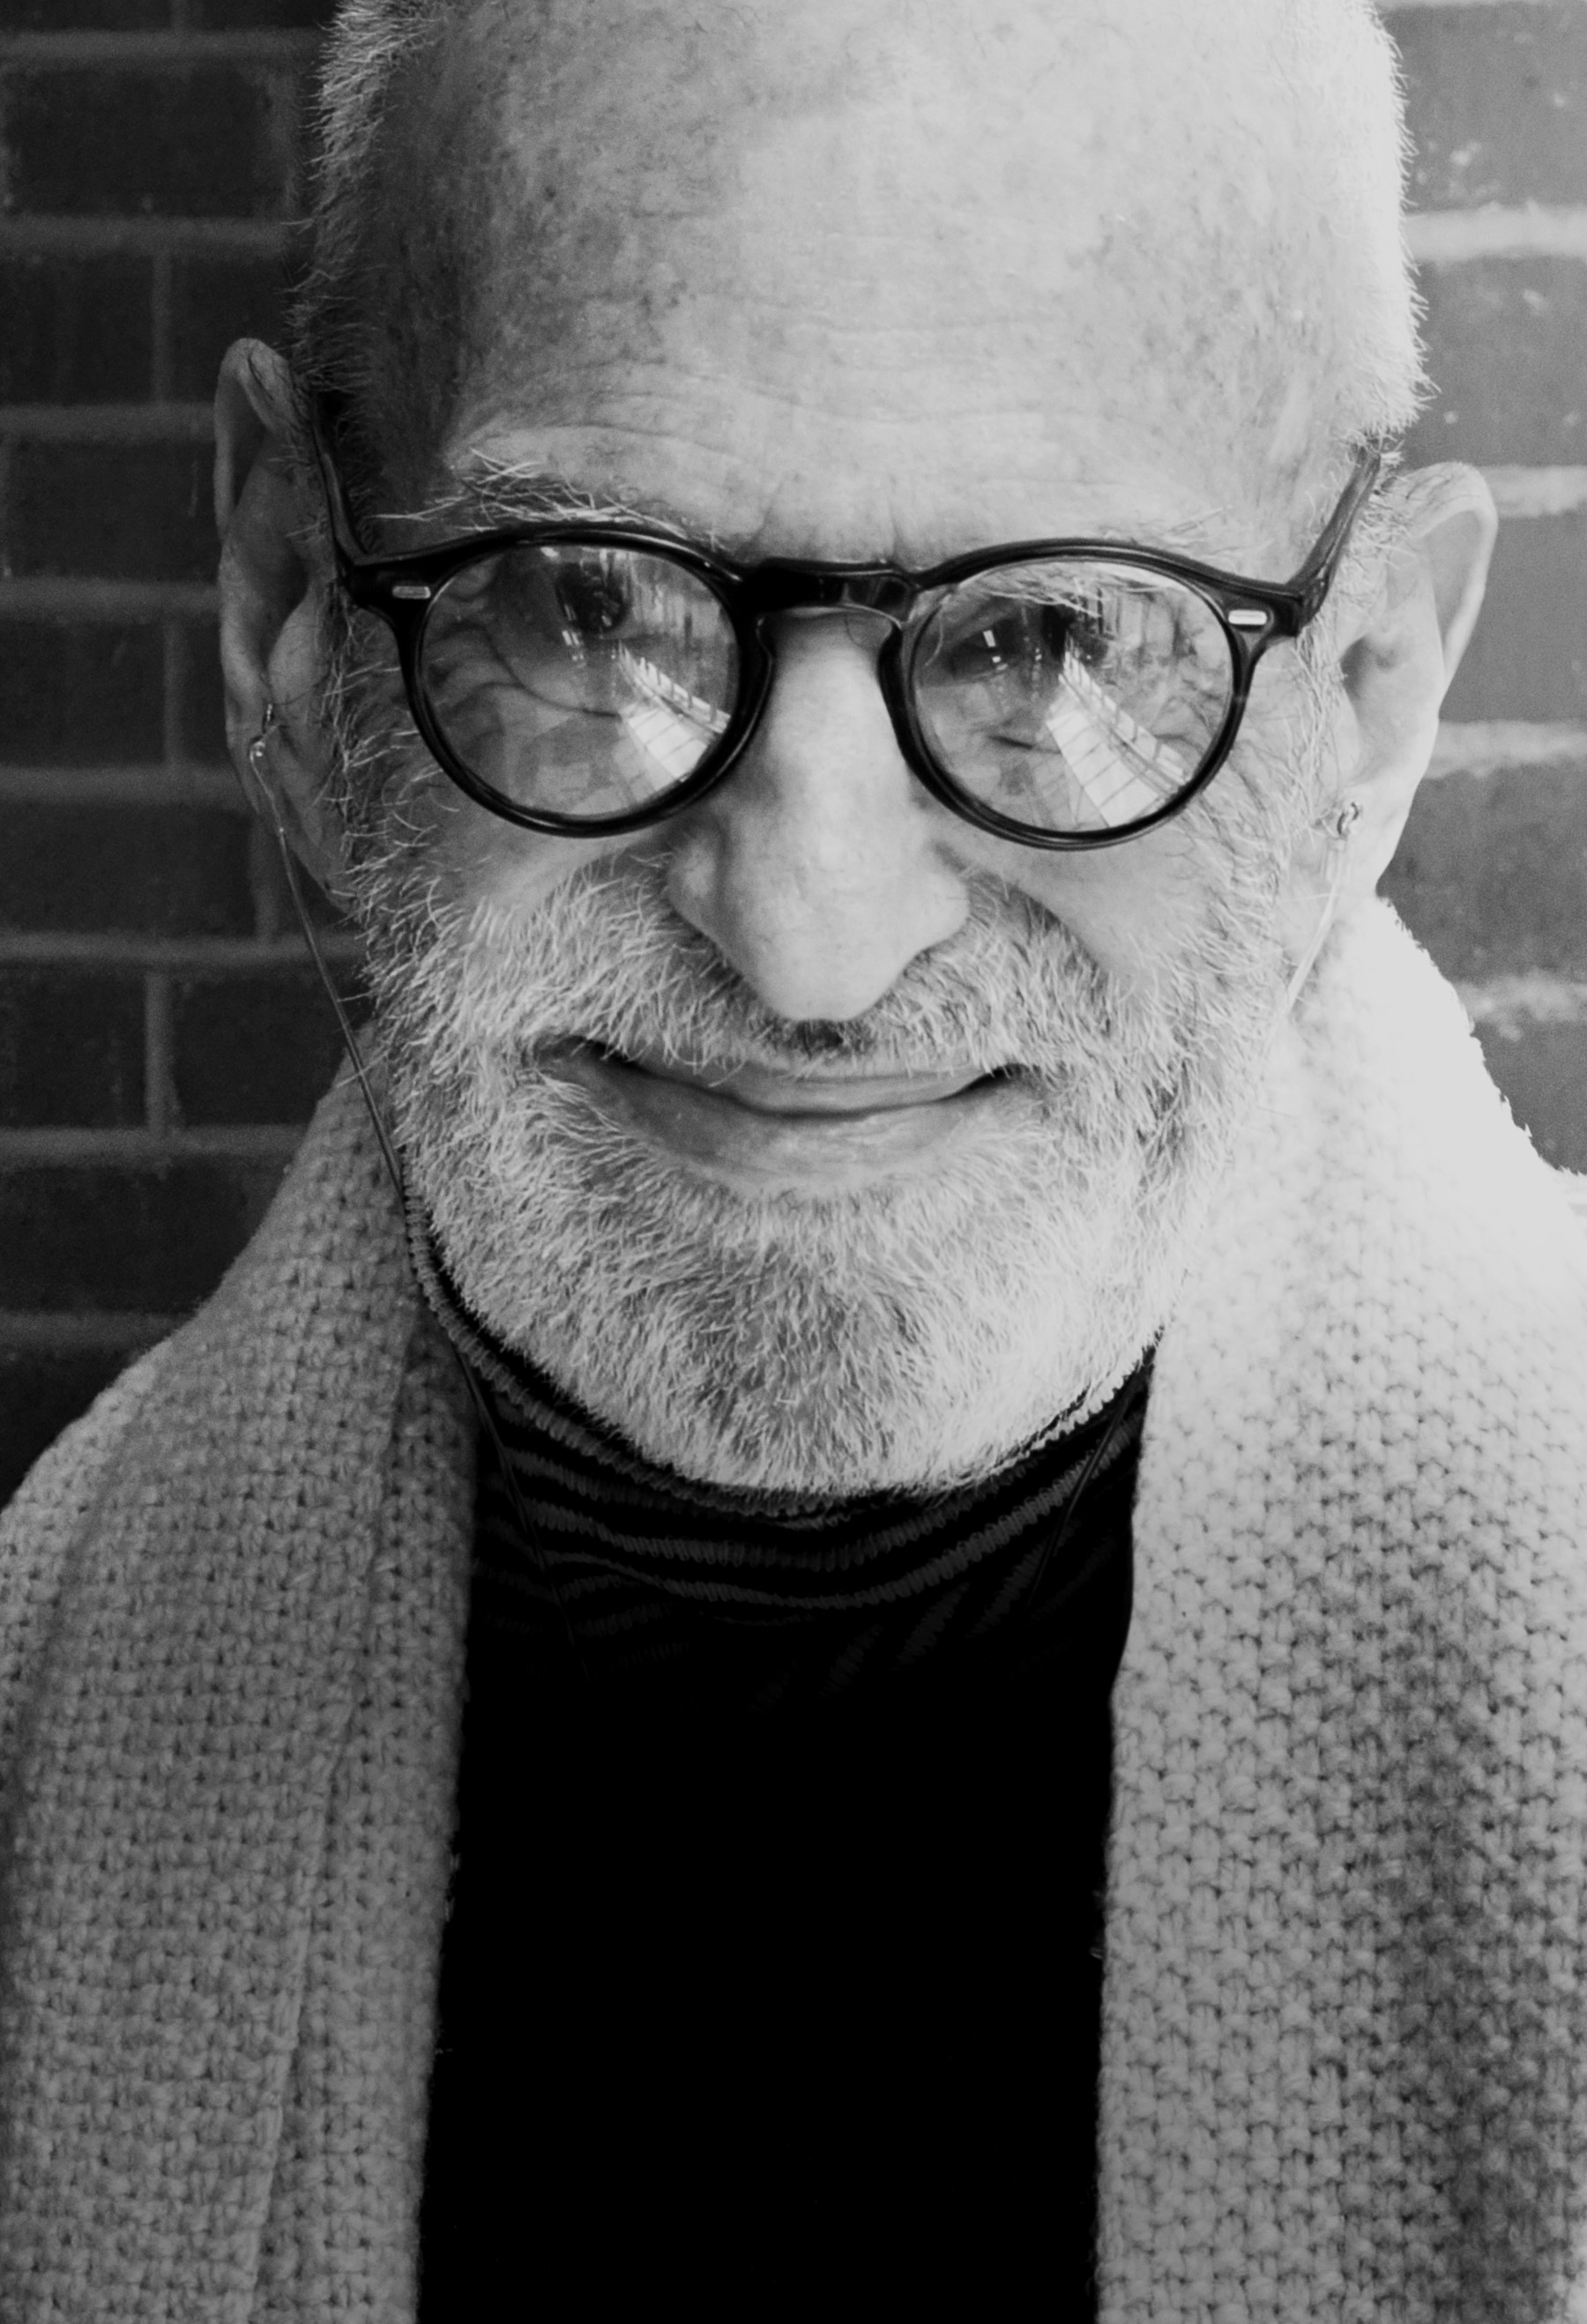 Gay rights activist and author Larry Kramer.